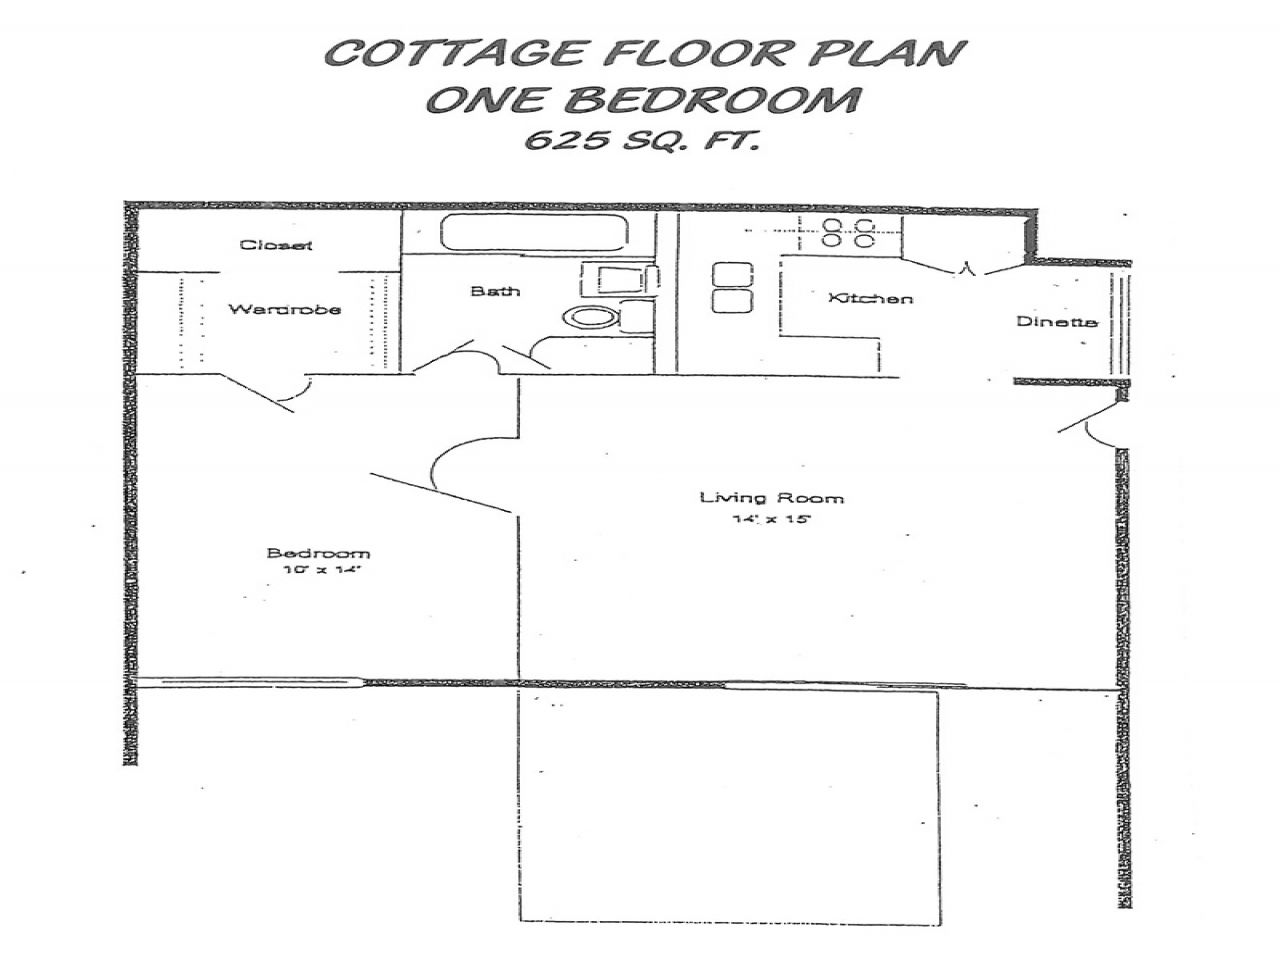 1 bedroom cottage floor plans 1 bedroom mobile homes one 13911 | 1 bedroom cottage floor plans 1 bedroom mobile homes lrg 841e3a6c5776b09f